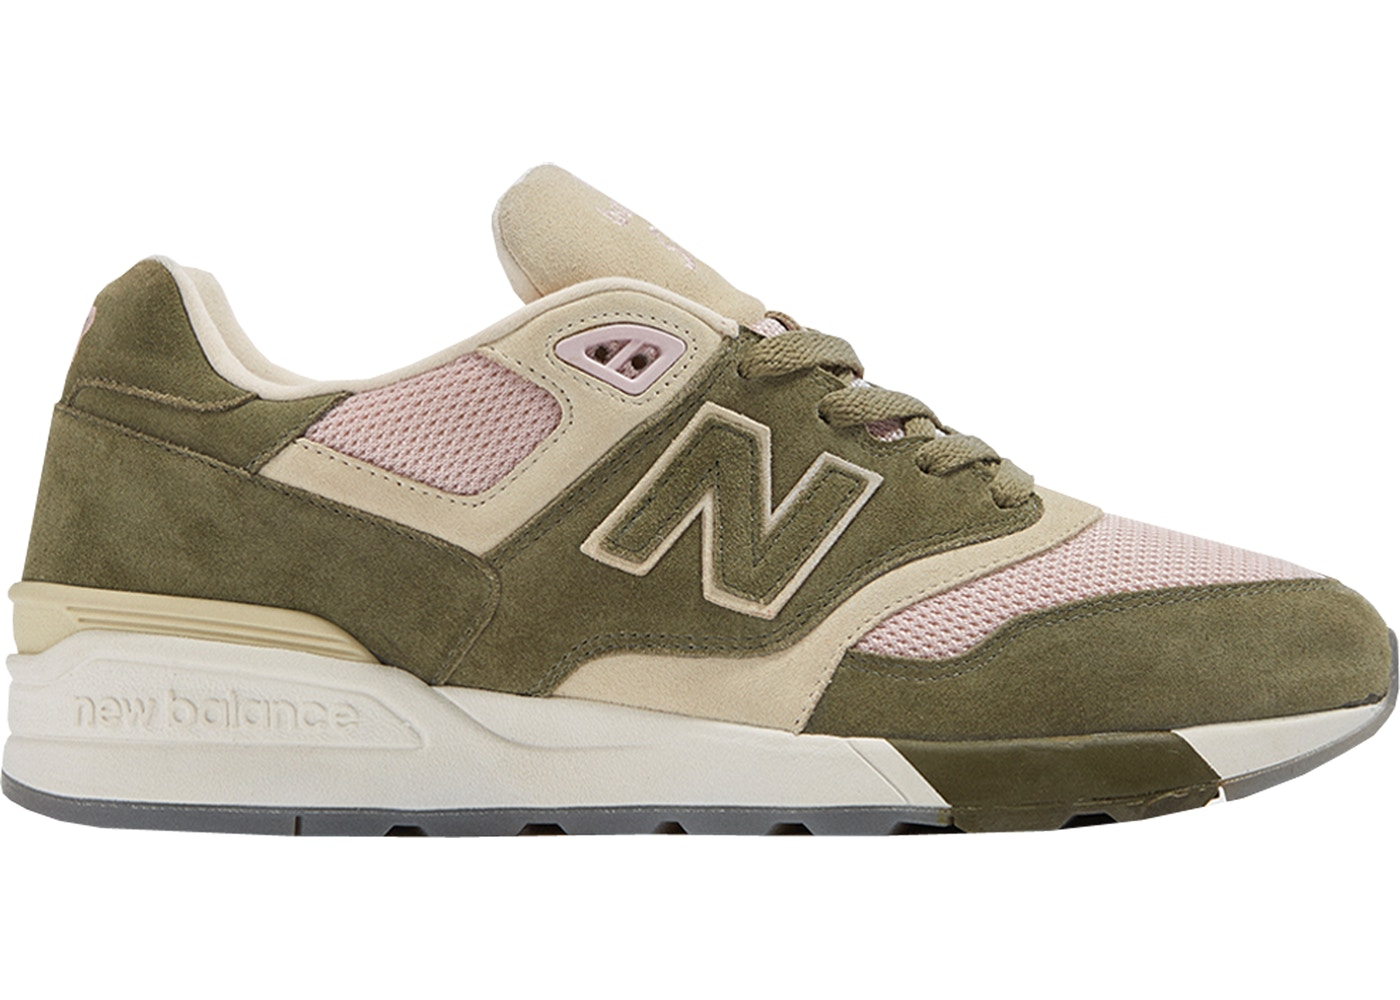 info for b0970 69d93 New Balance 597 Neotropic Green - Sneakers